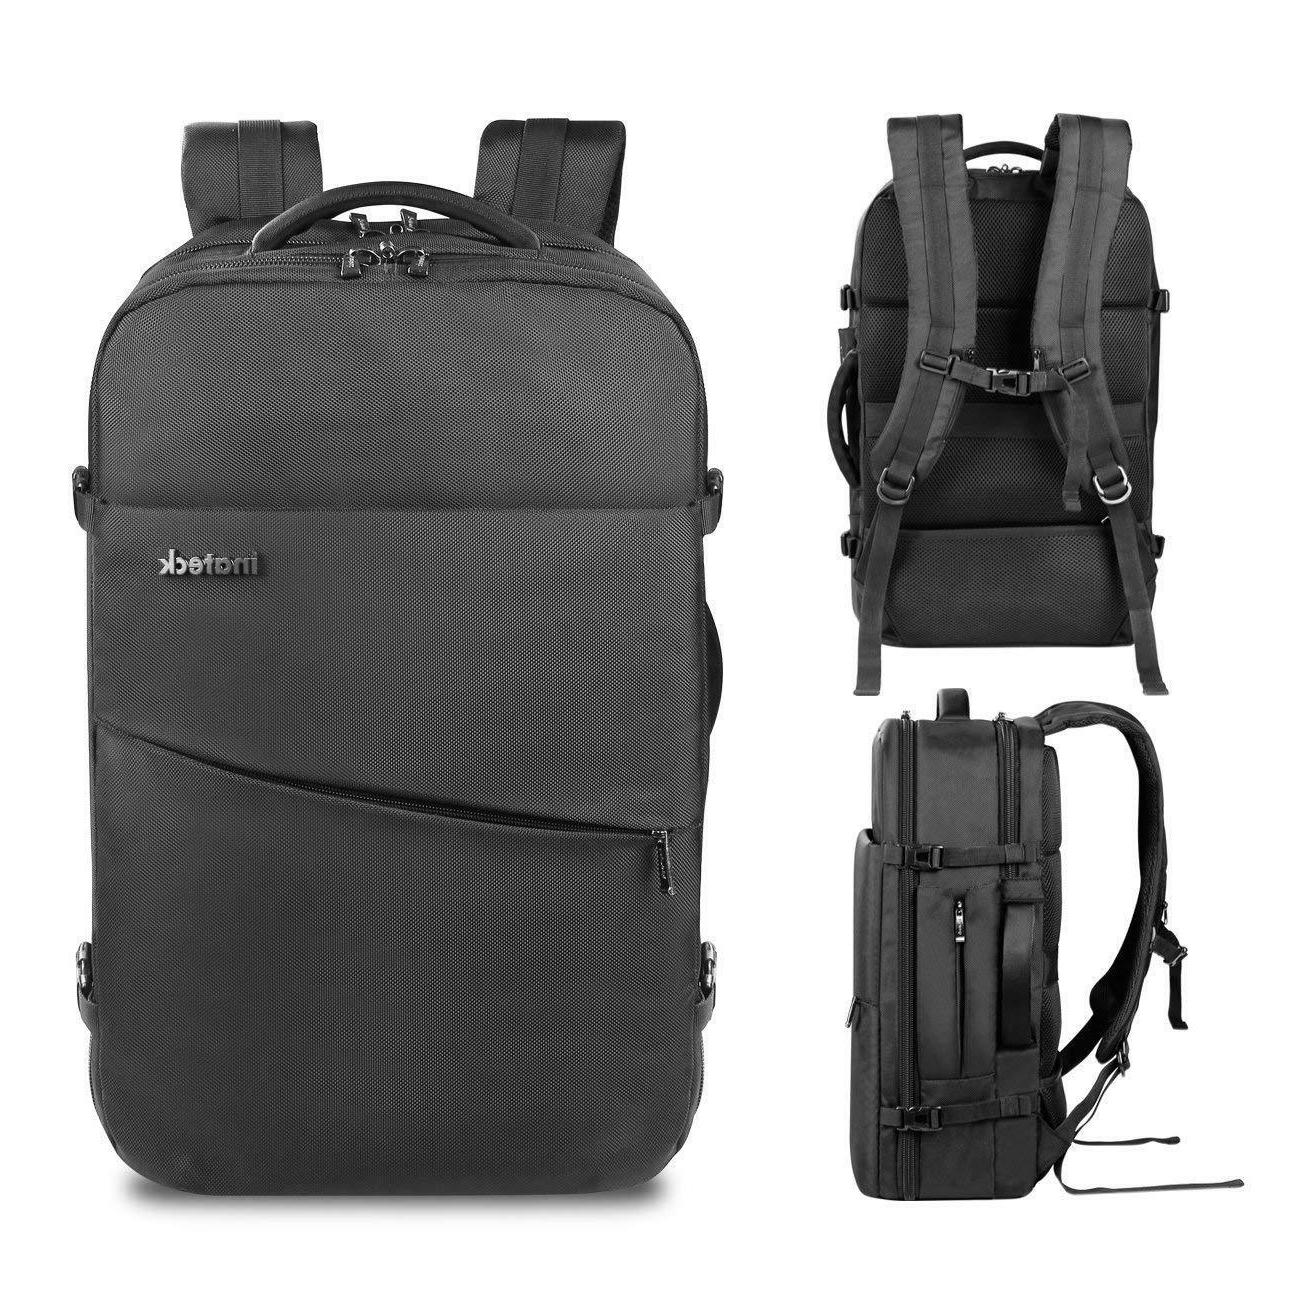 Inateck Inch Business Travel Laptop Rucksack